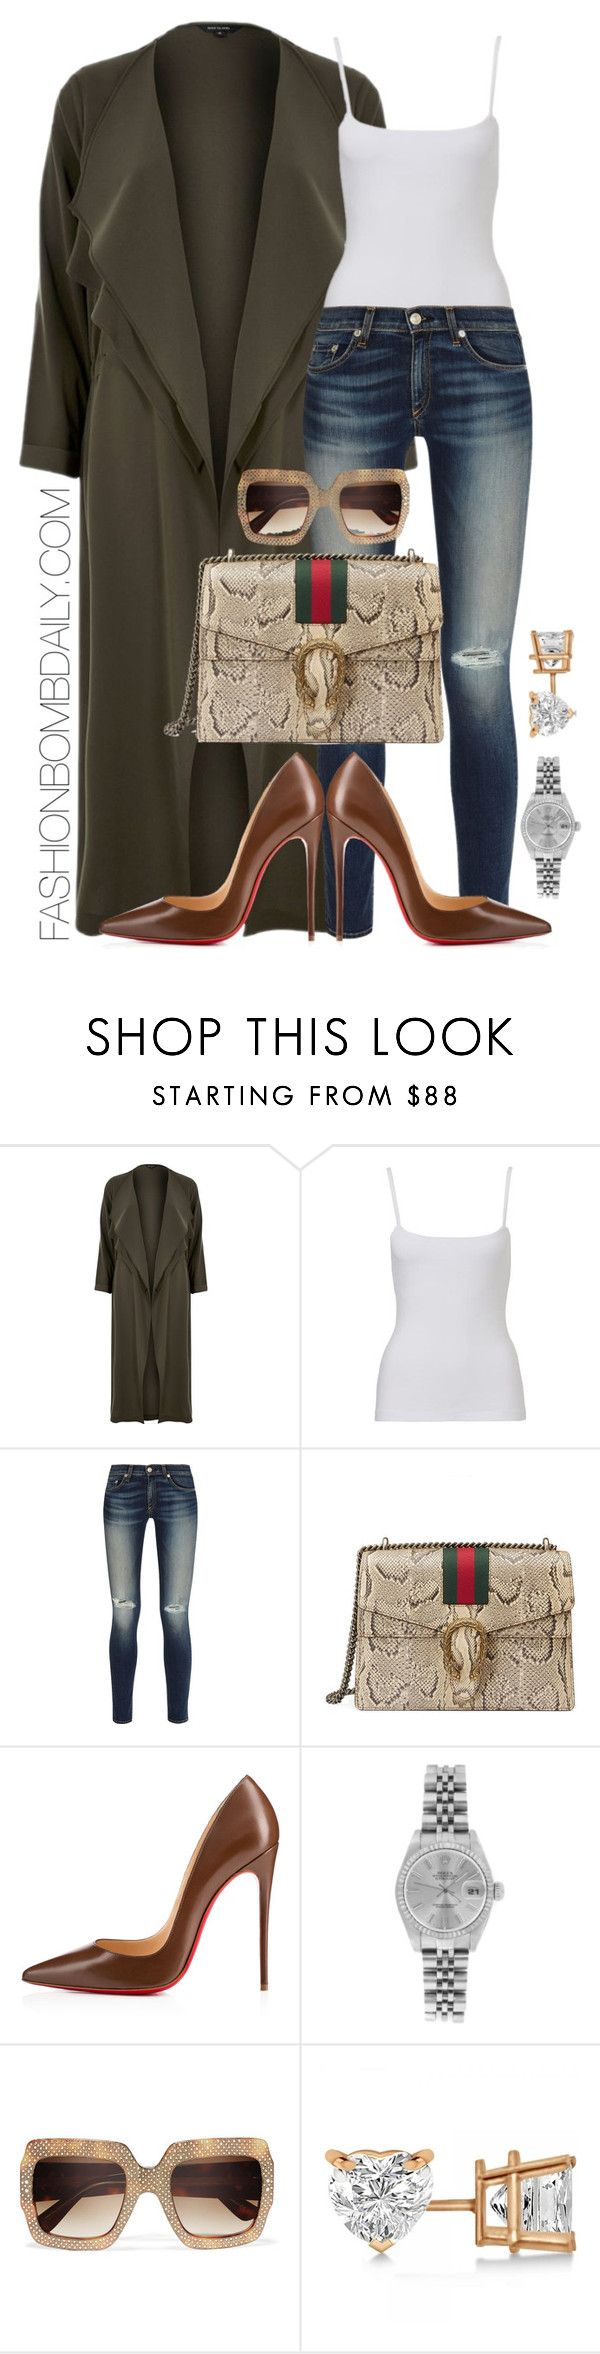 """""""Untitled #1934"""" by dnicoleg ❤ liked on Polyvore featuring River Island, rag & bone, Gucci, Christian Louboutin, Rolex and Allurez"""